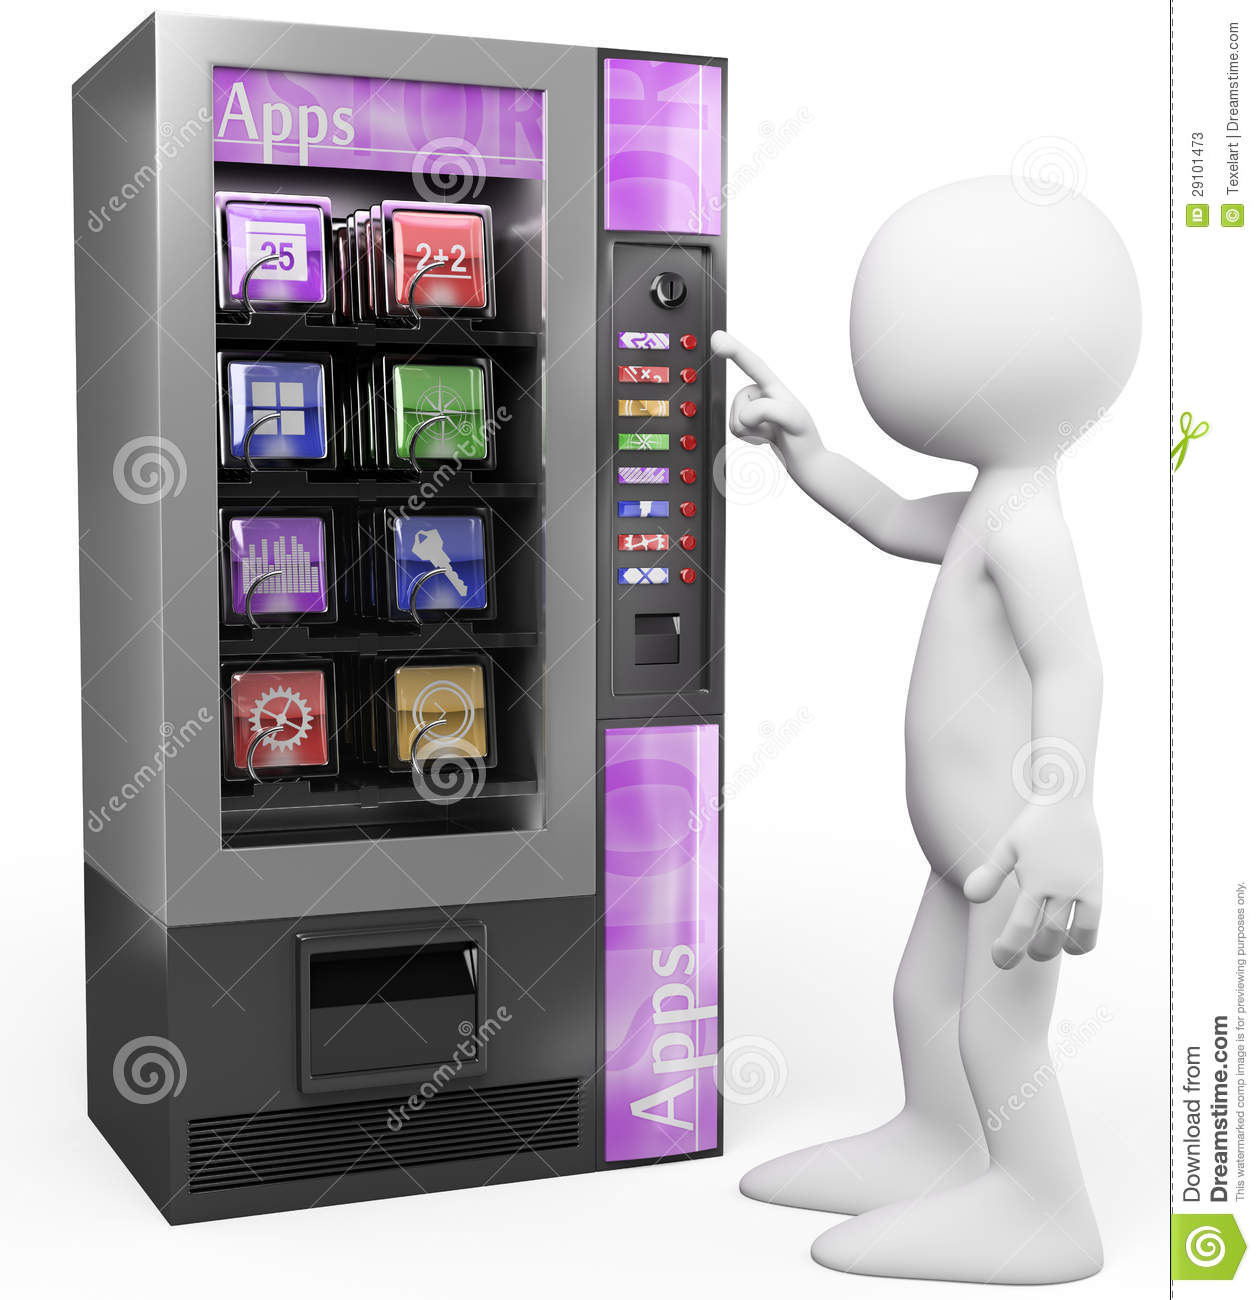 3d white people apps vending machine stock photos image 29101473. Black Bedroom Furniture Sets. Home Design Ideas